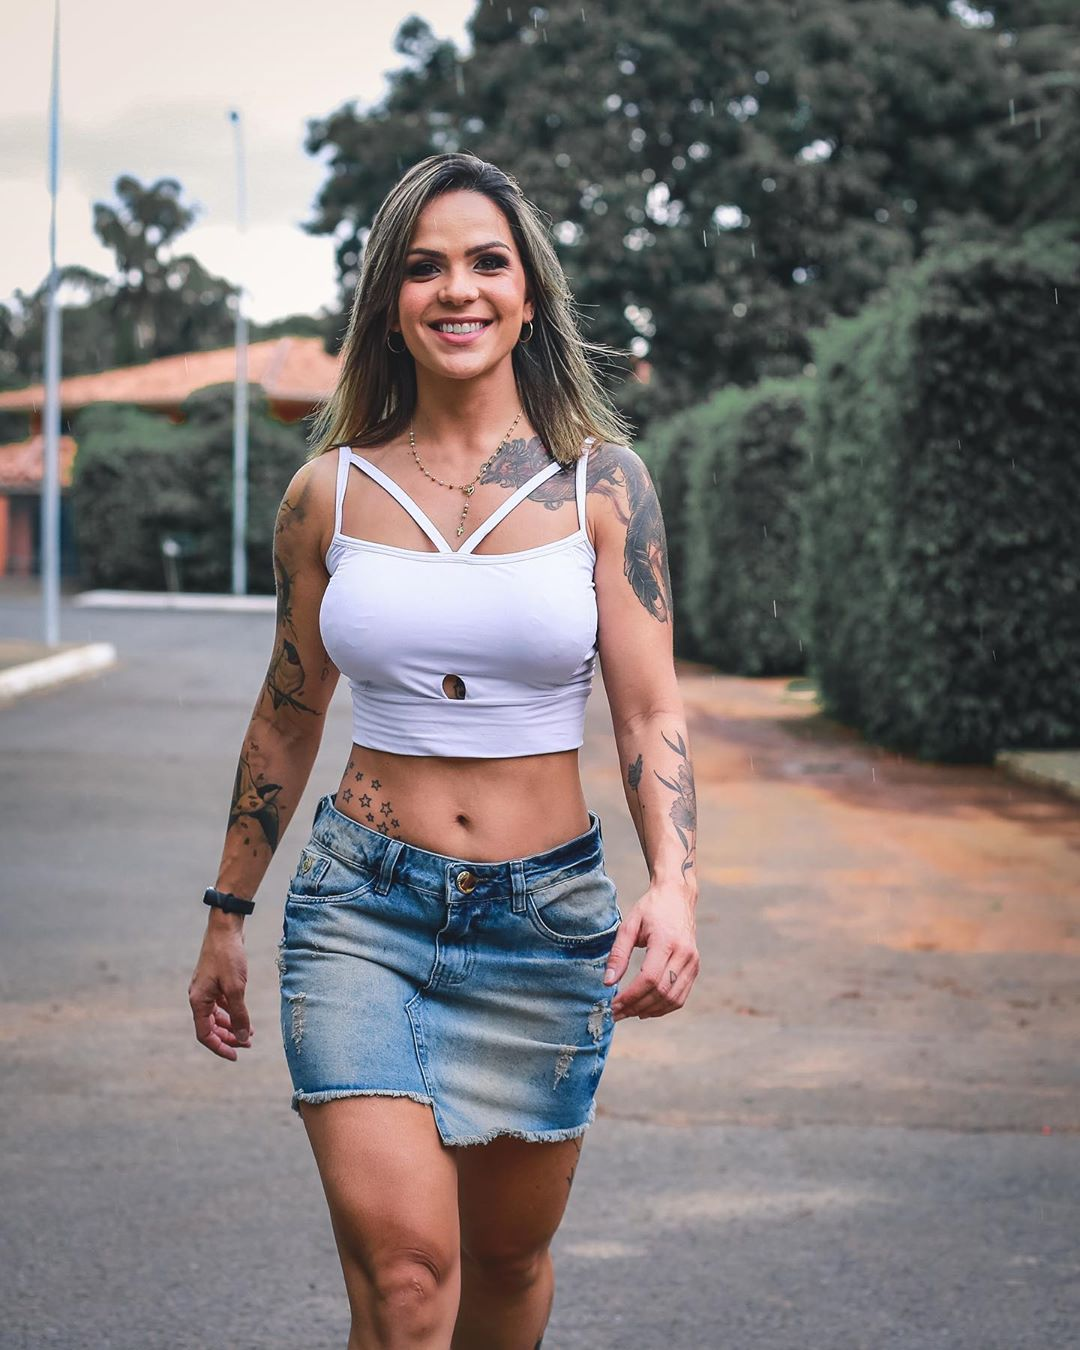 Pamella-Sette-Wallpapers-Insta-Fit-Bio-4